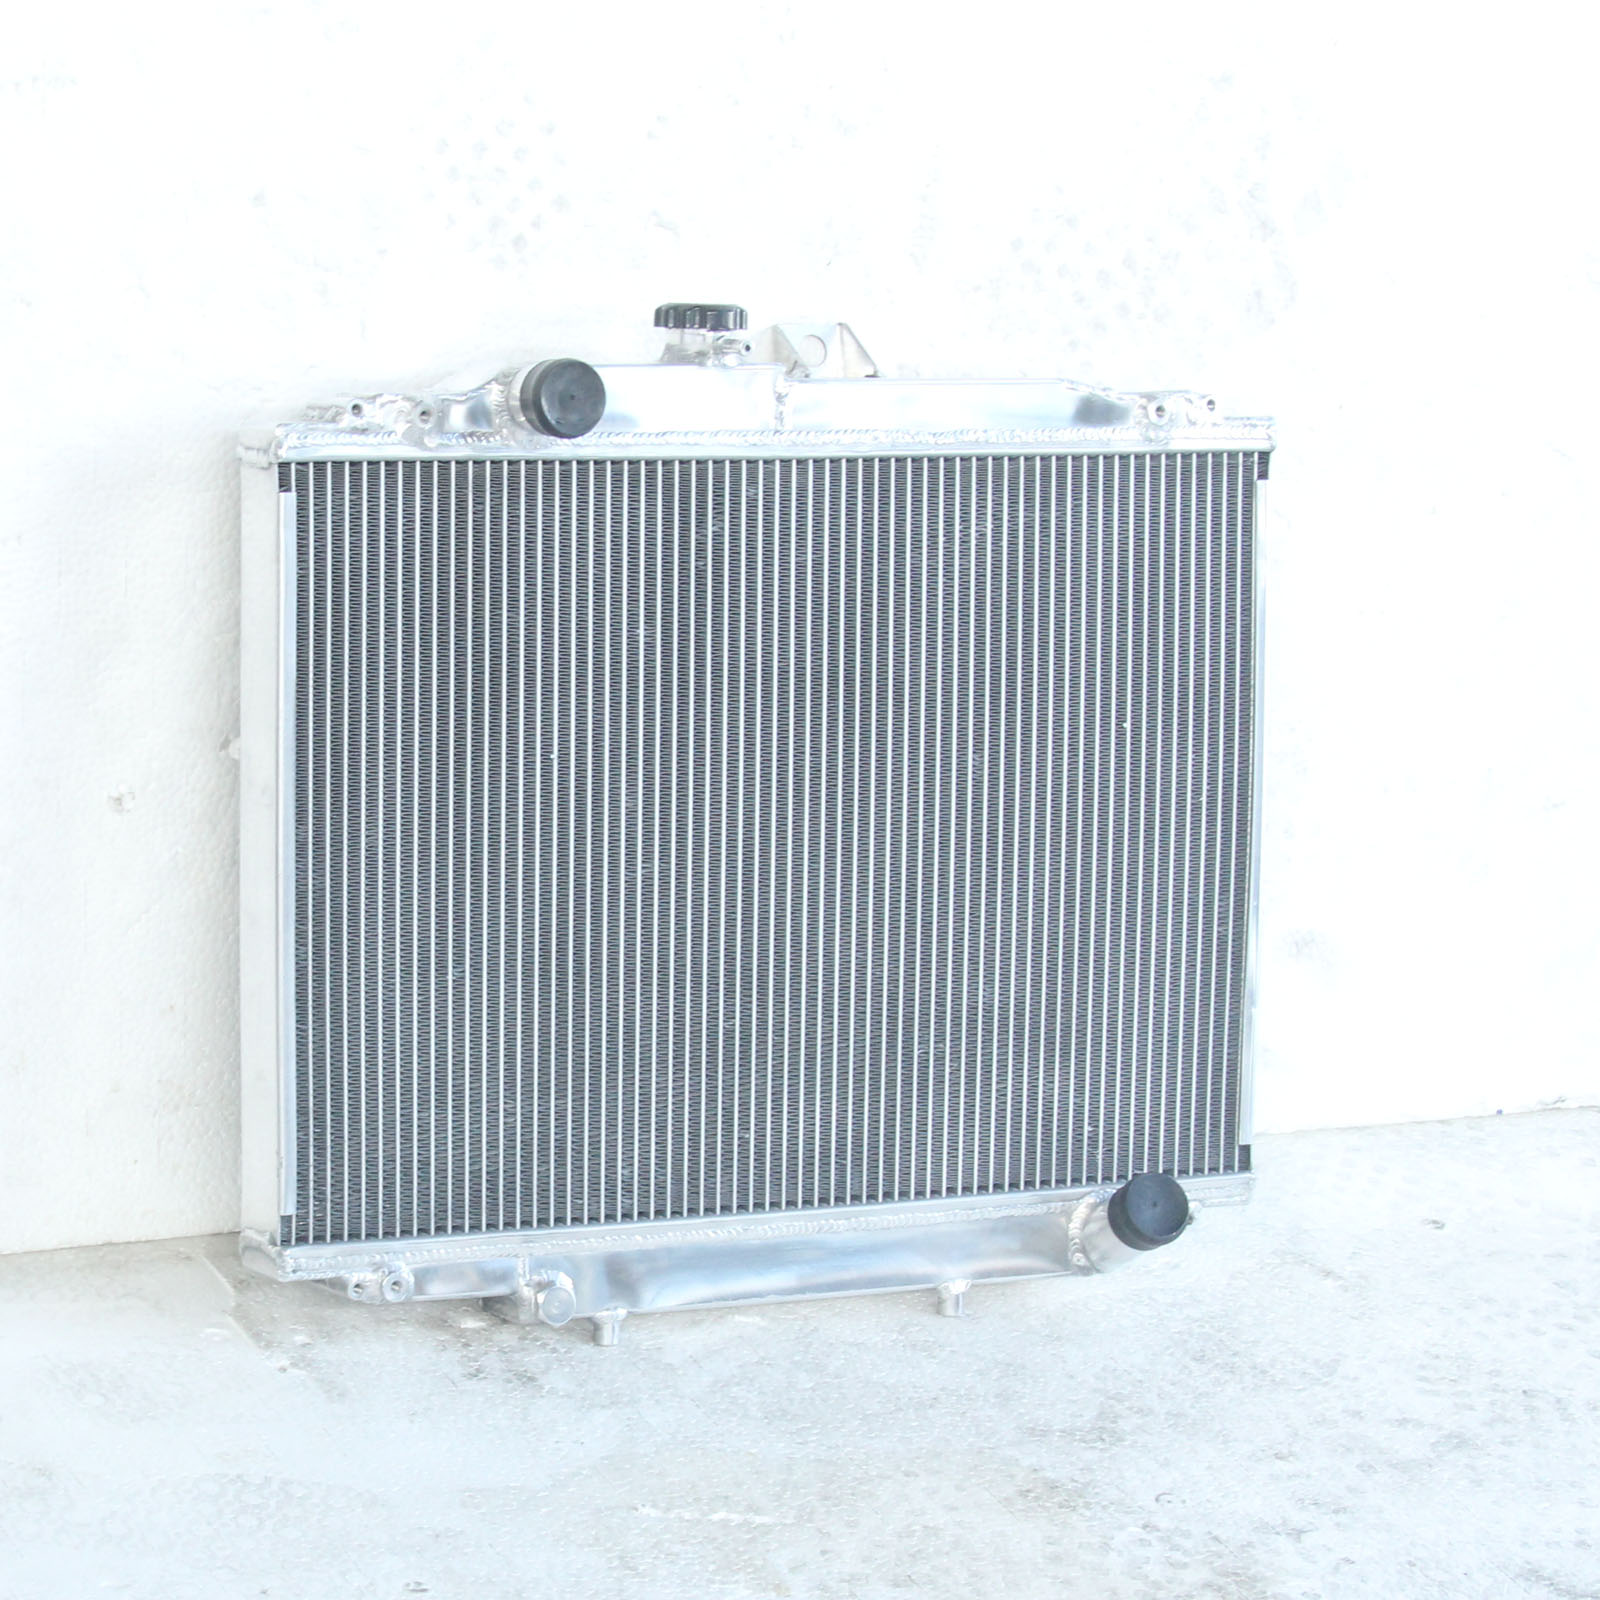 Aluminum Radiator For Mitsubishi L300 Express 1986-2005 Manual ...